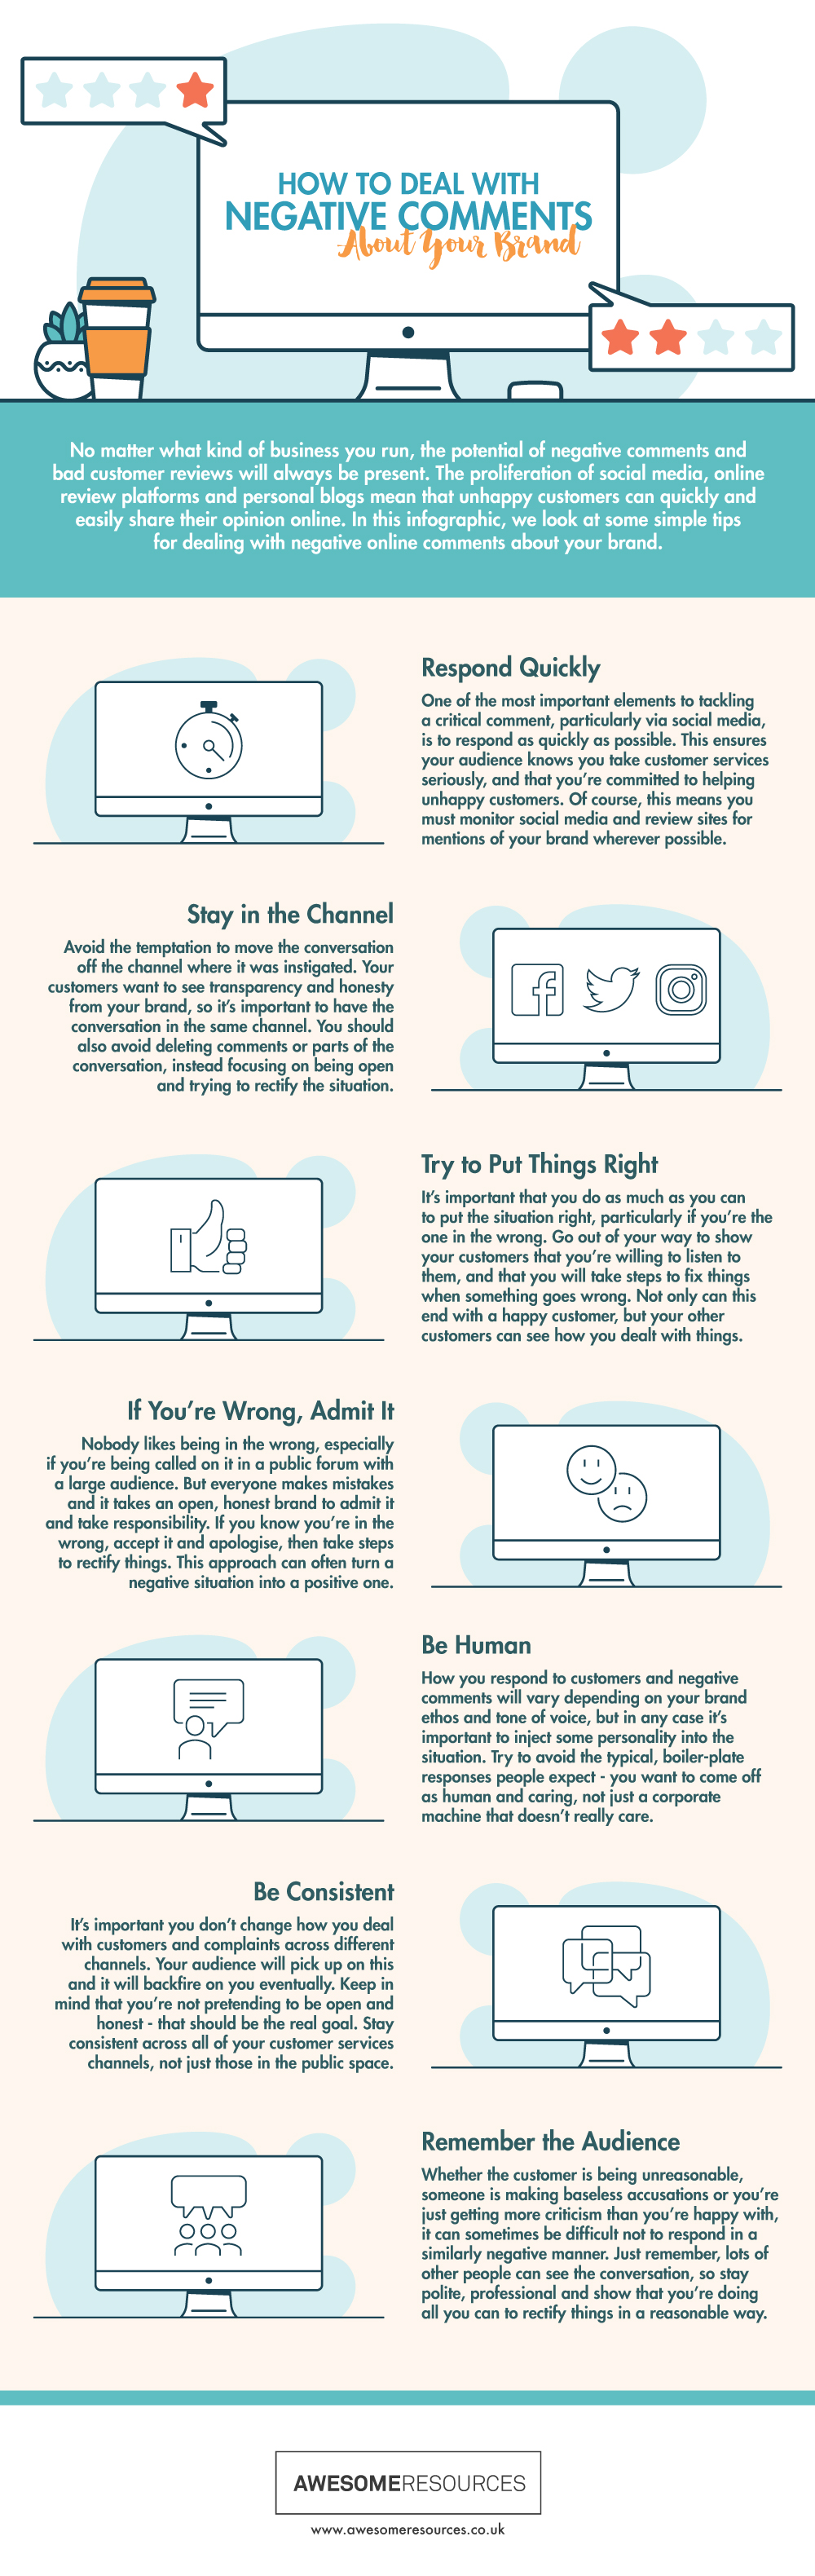 How to Deal With Negative Comments About Your Brand by Awesome Resources